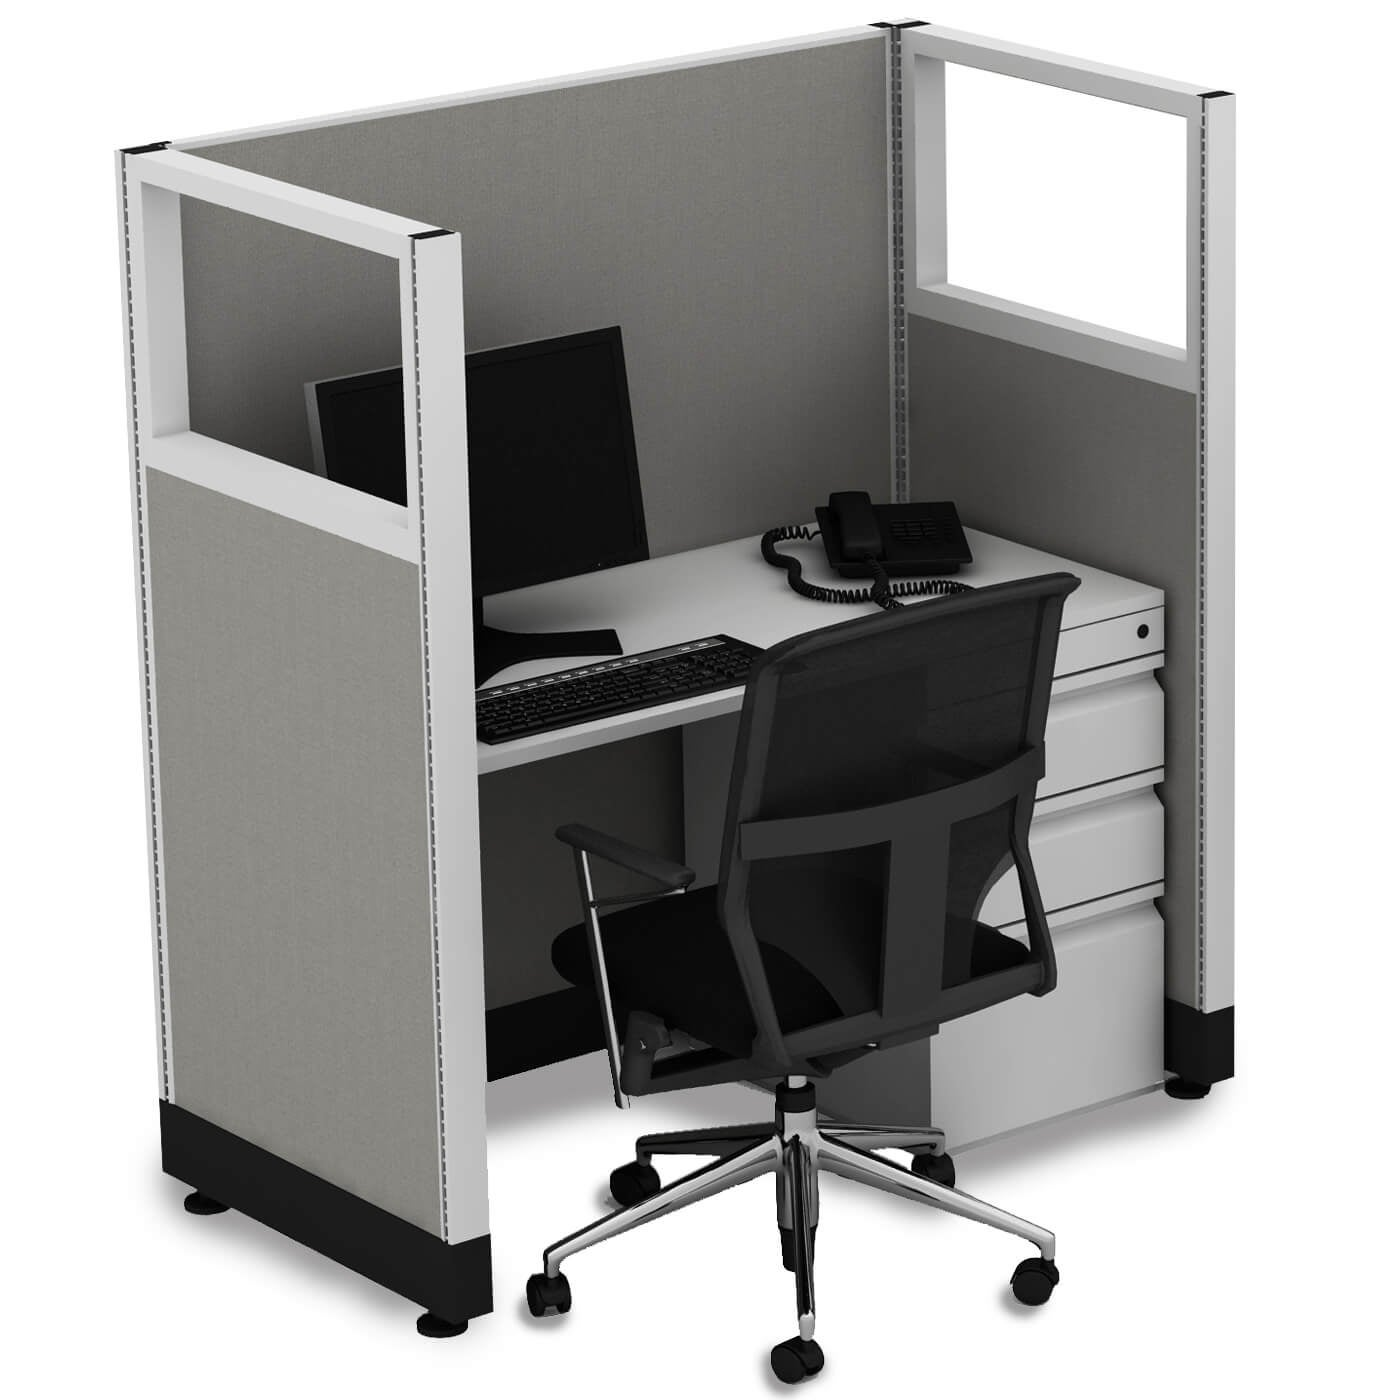 Cubicle Workstations 53H Powered (3x4 - Espresso Desk White Paint - Assembled)